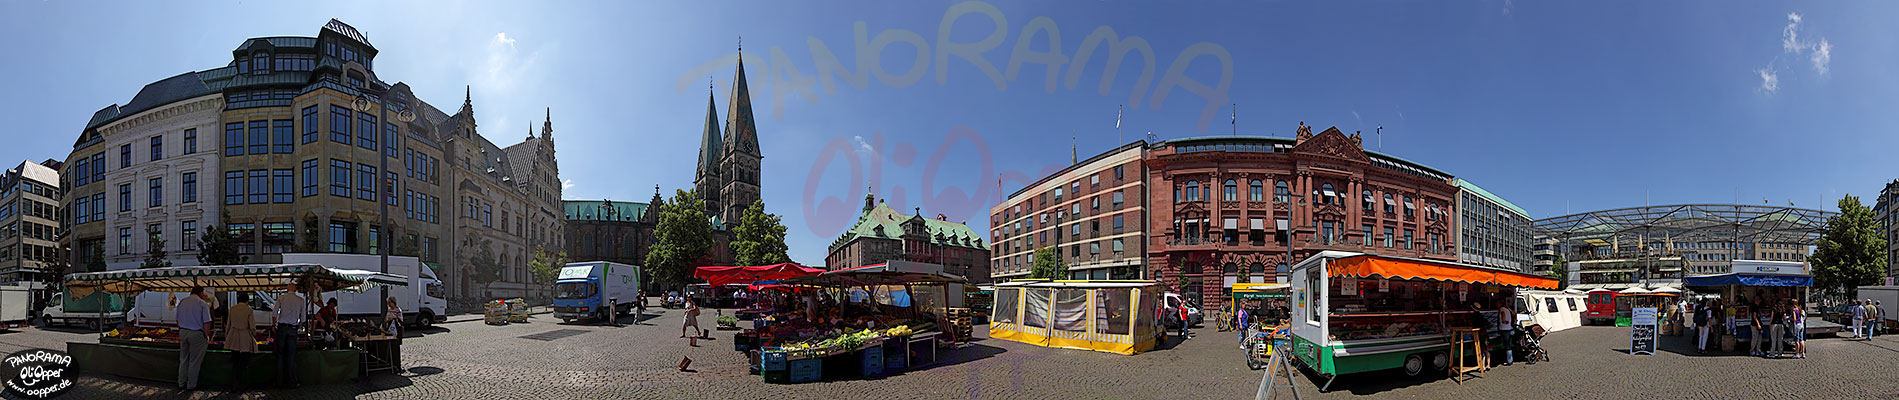 panorama bremen markt auf dem domshof p002. Black Bedroom Furniture Sets. Home Design Ideas